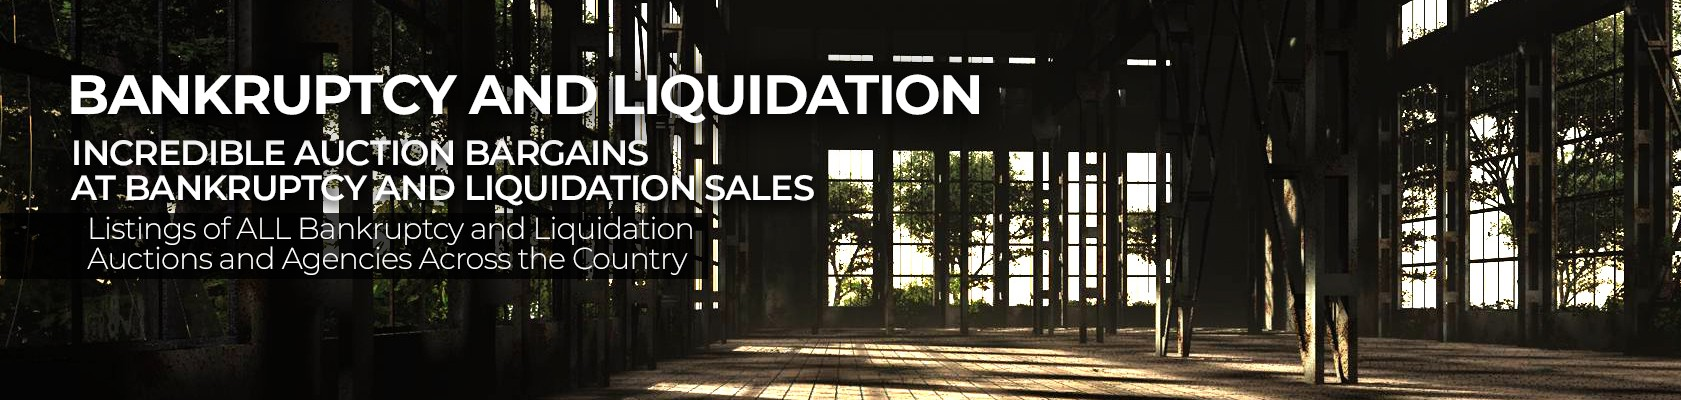 bankruptcy and liquidation auctions